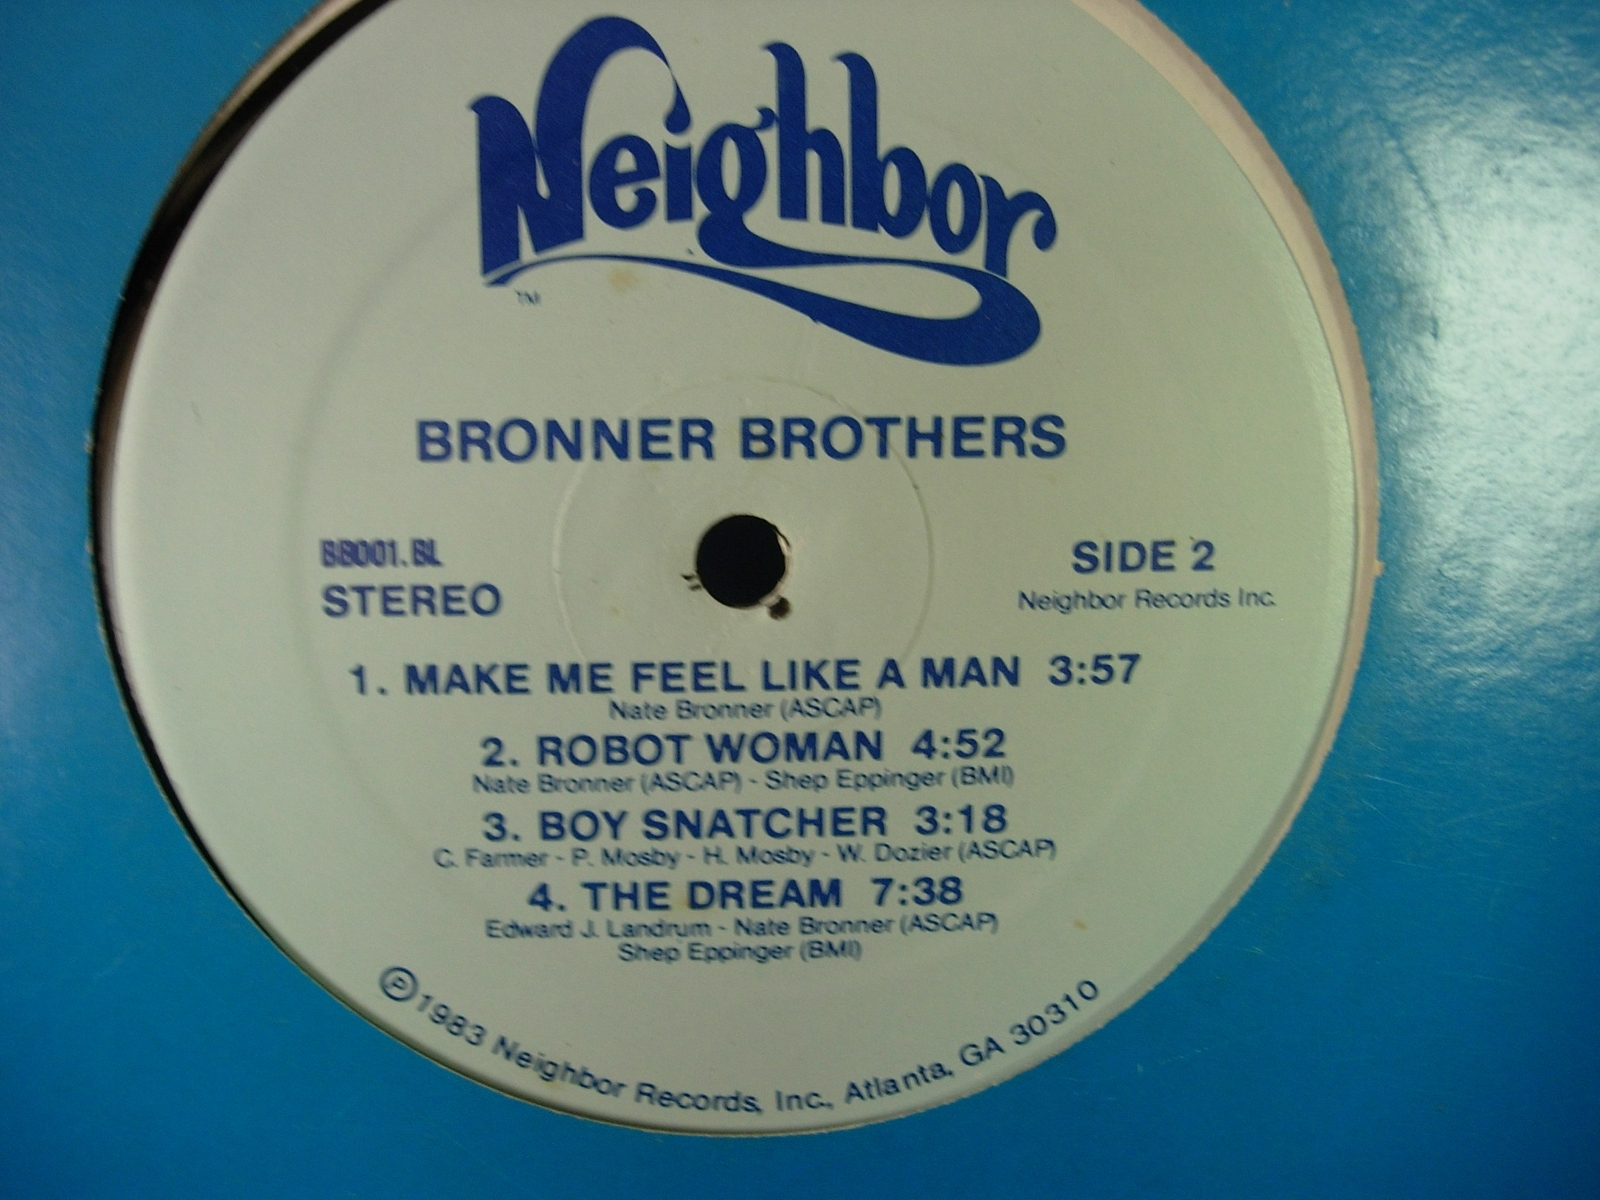 Bronner Brothers - Bronner Brothers - Neighbor Records BB001